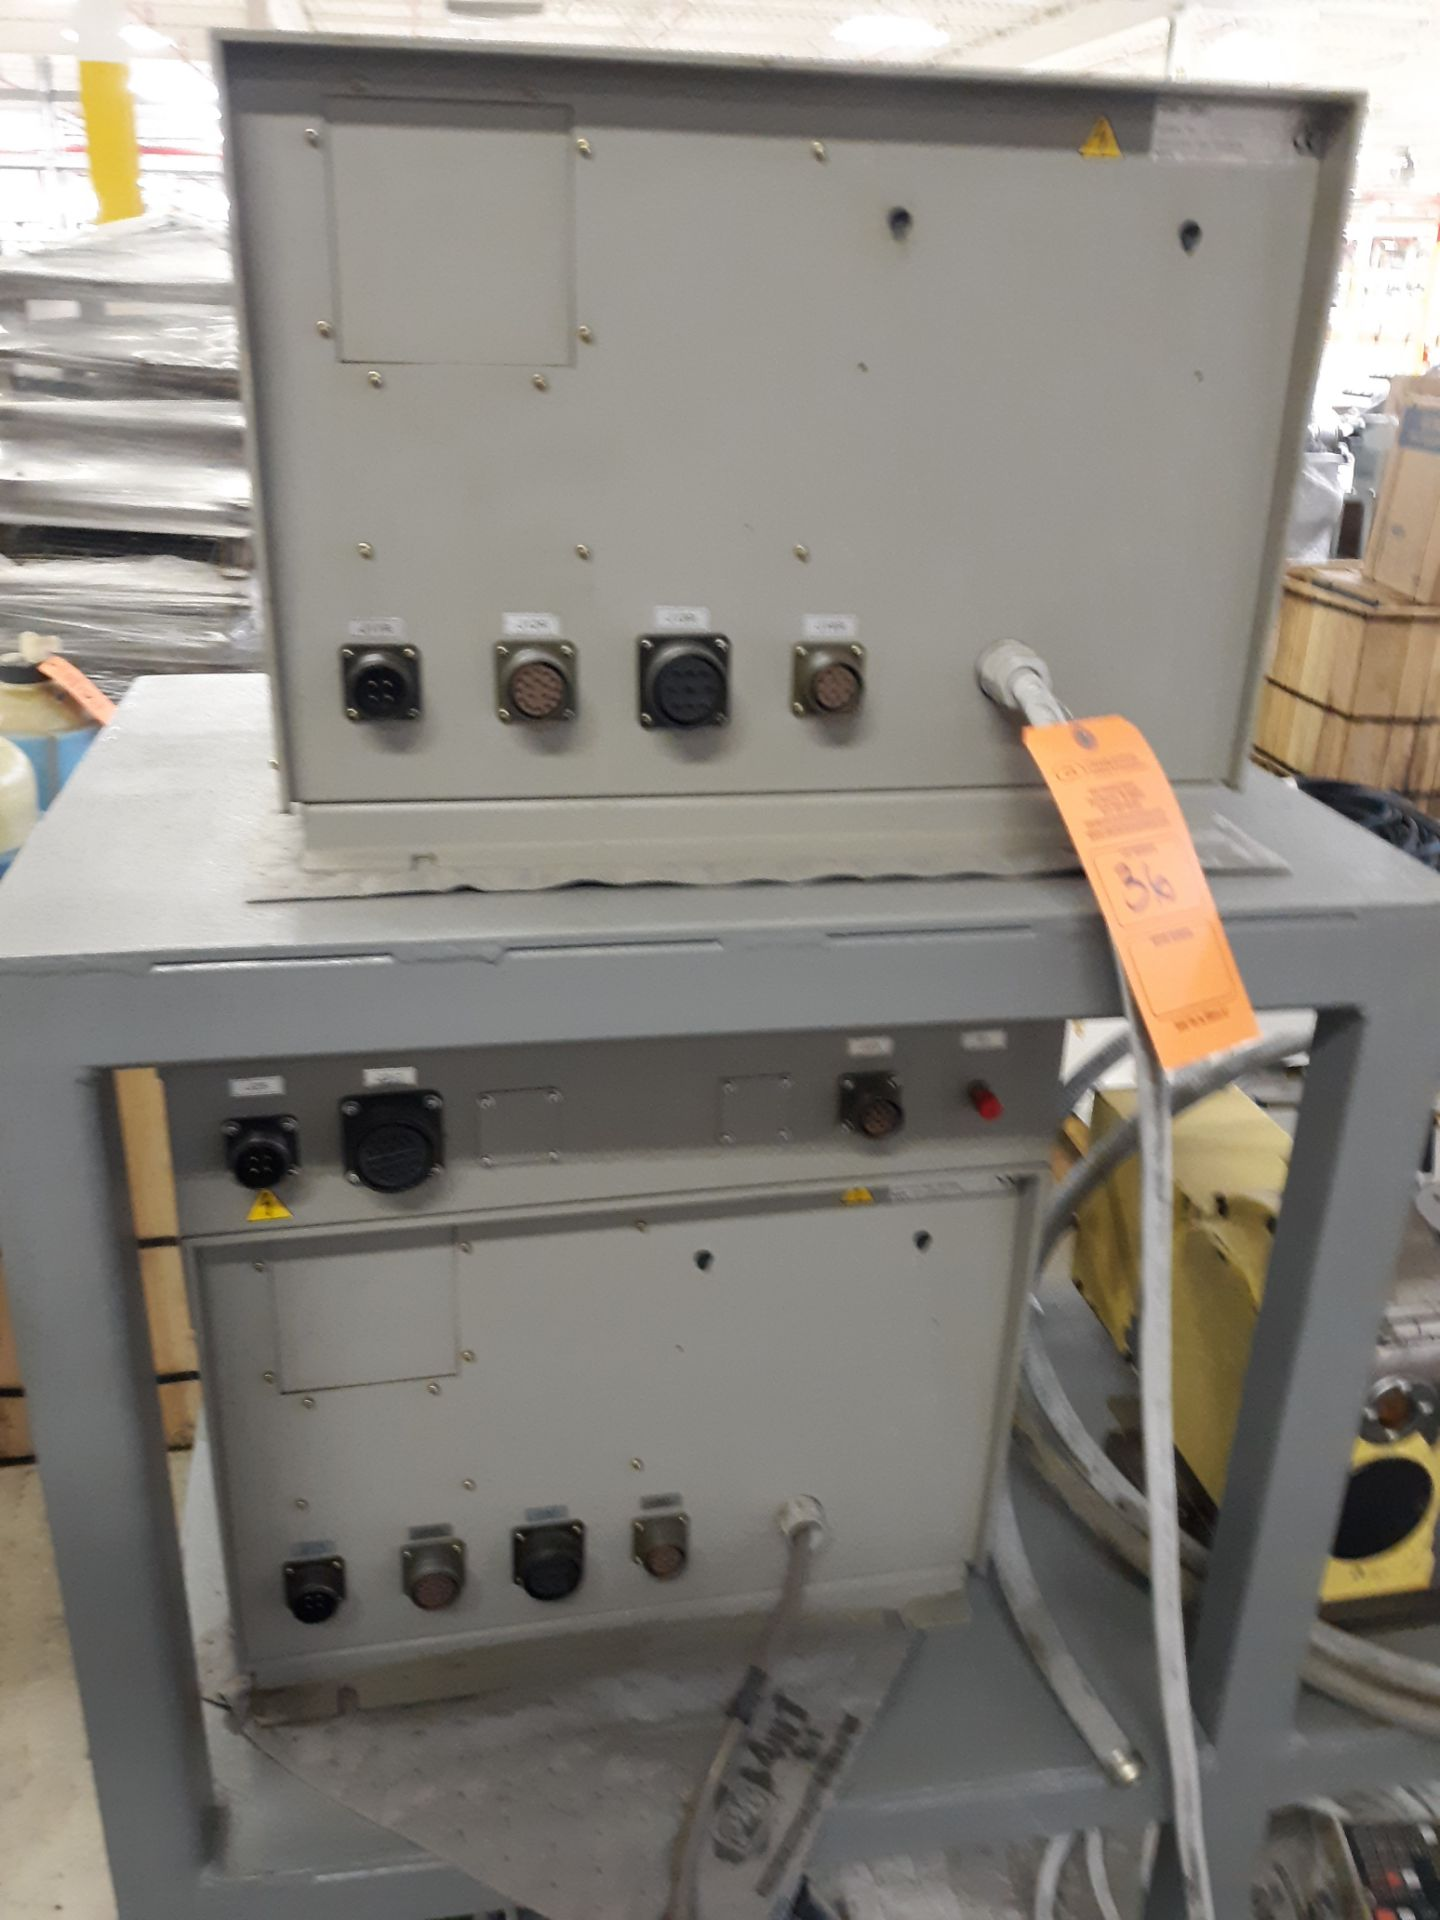 Lot 36 - NIKKEN ROTARY TABLE W/CABLES W/(2) CONTROL UNITS & (1)NIKKEN KEYPADS RIGGING FEE:$10